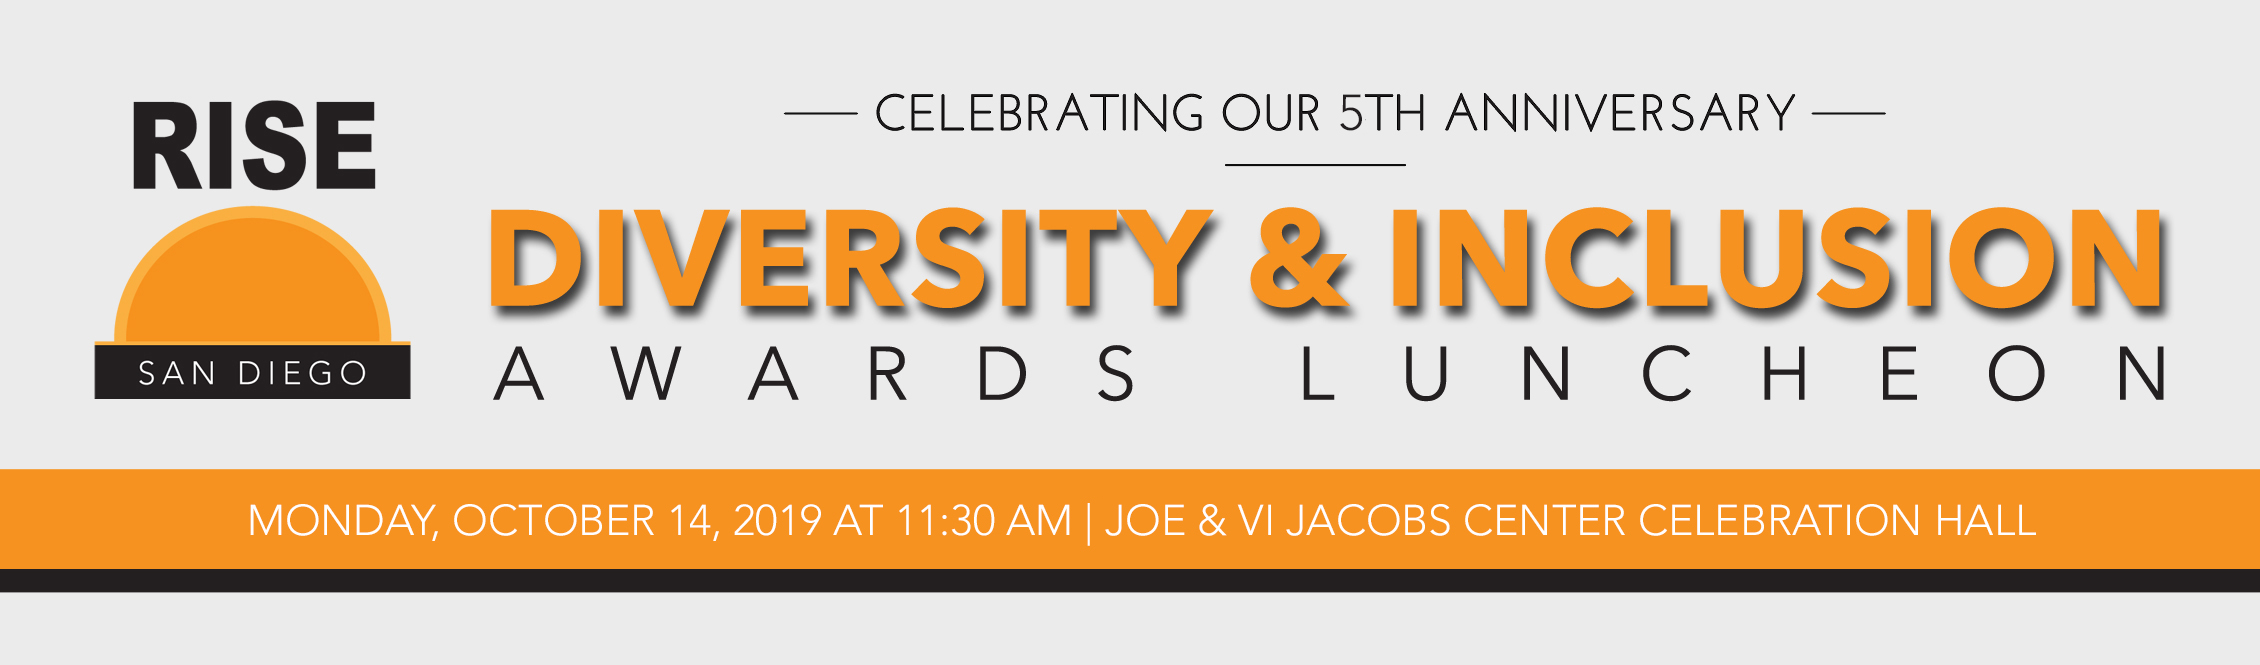 2019 RISE 5th Anniversary Luncheon & ILIA Awards